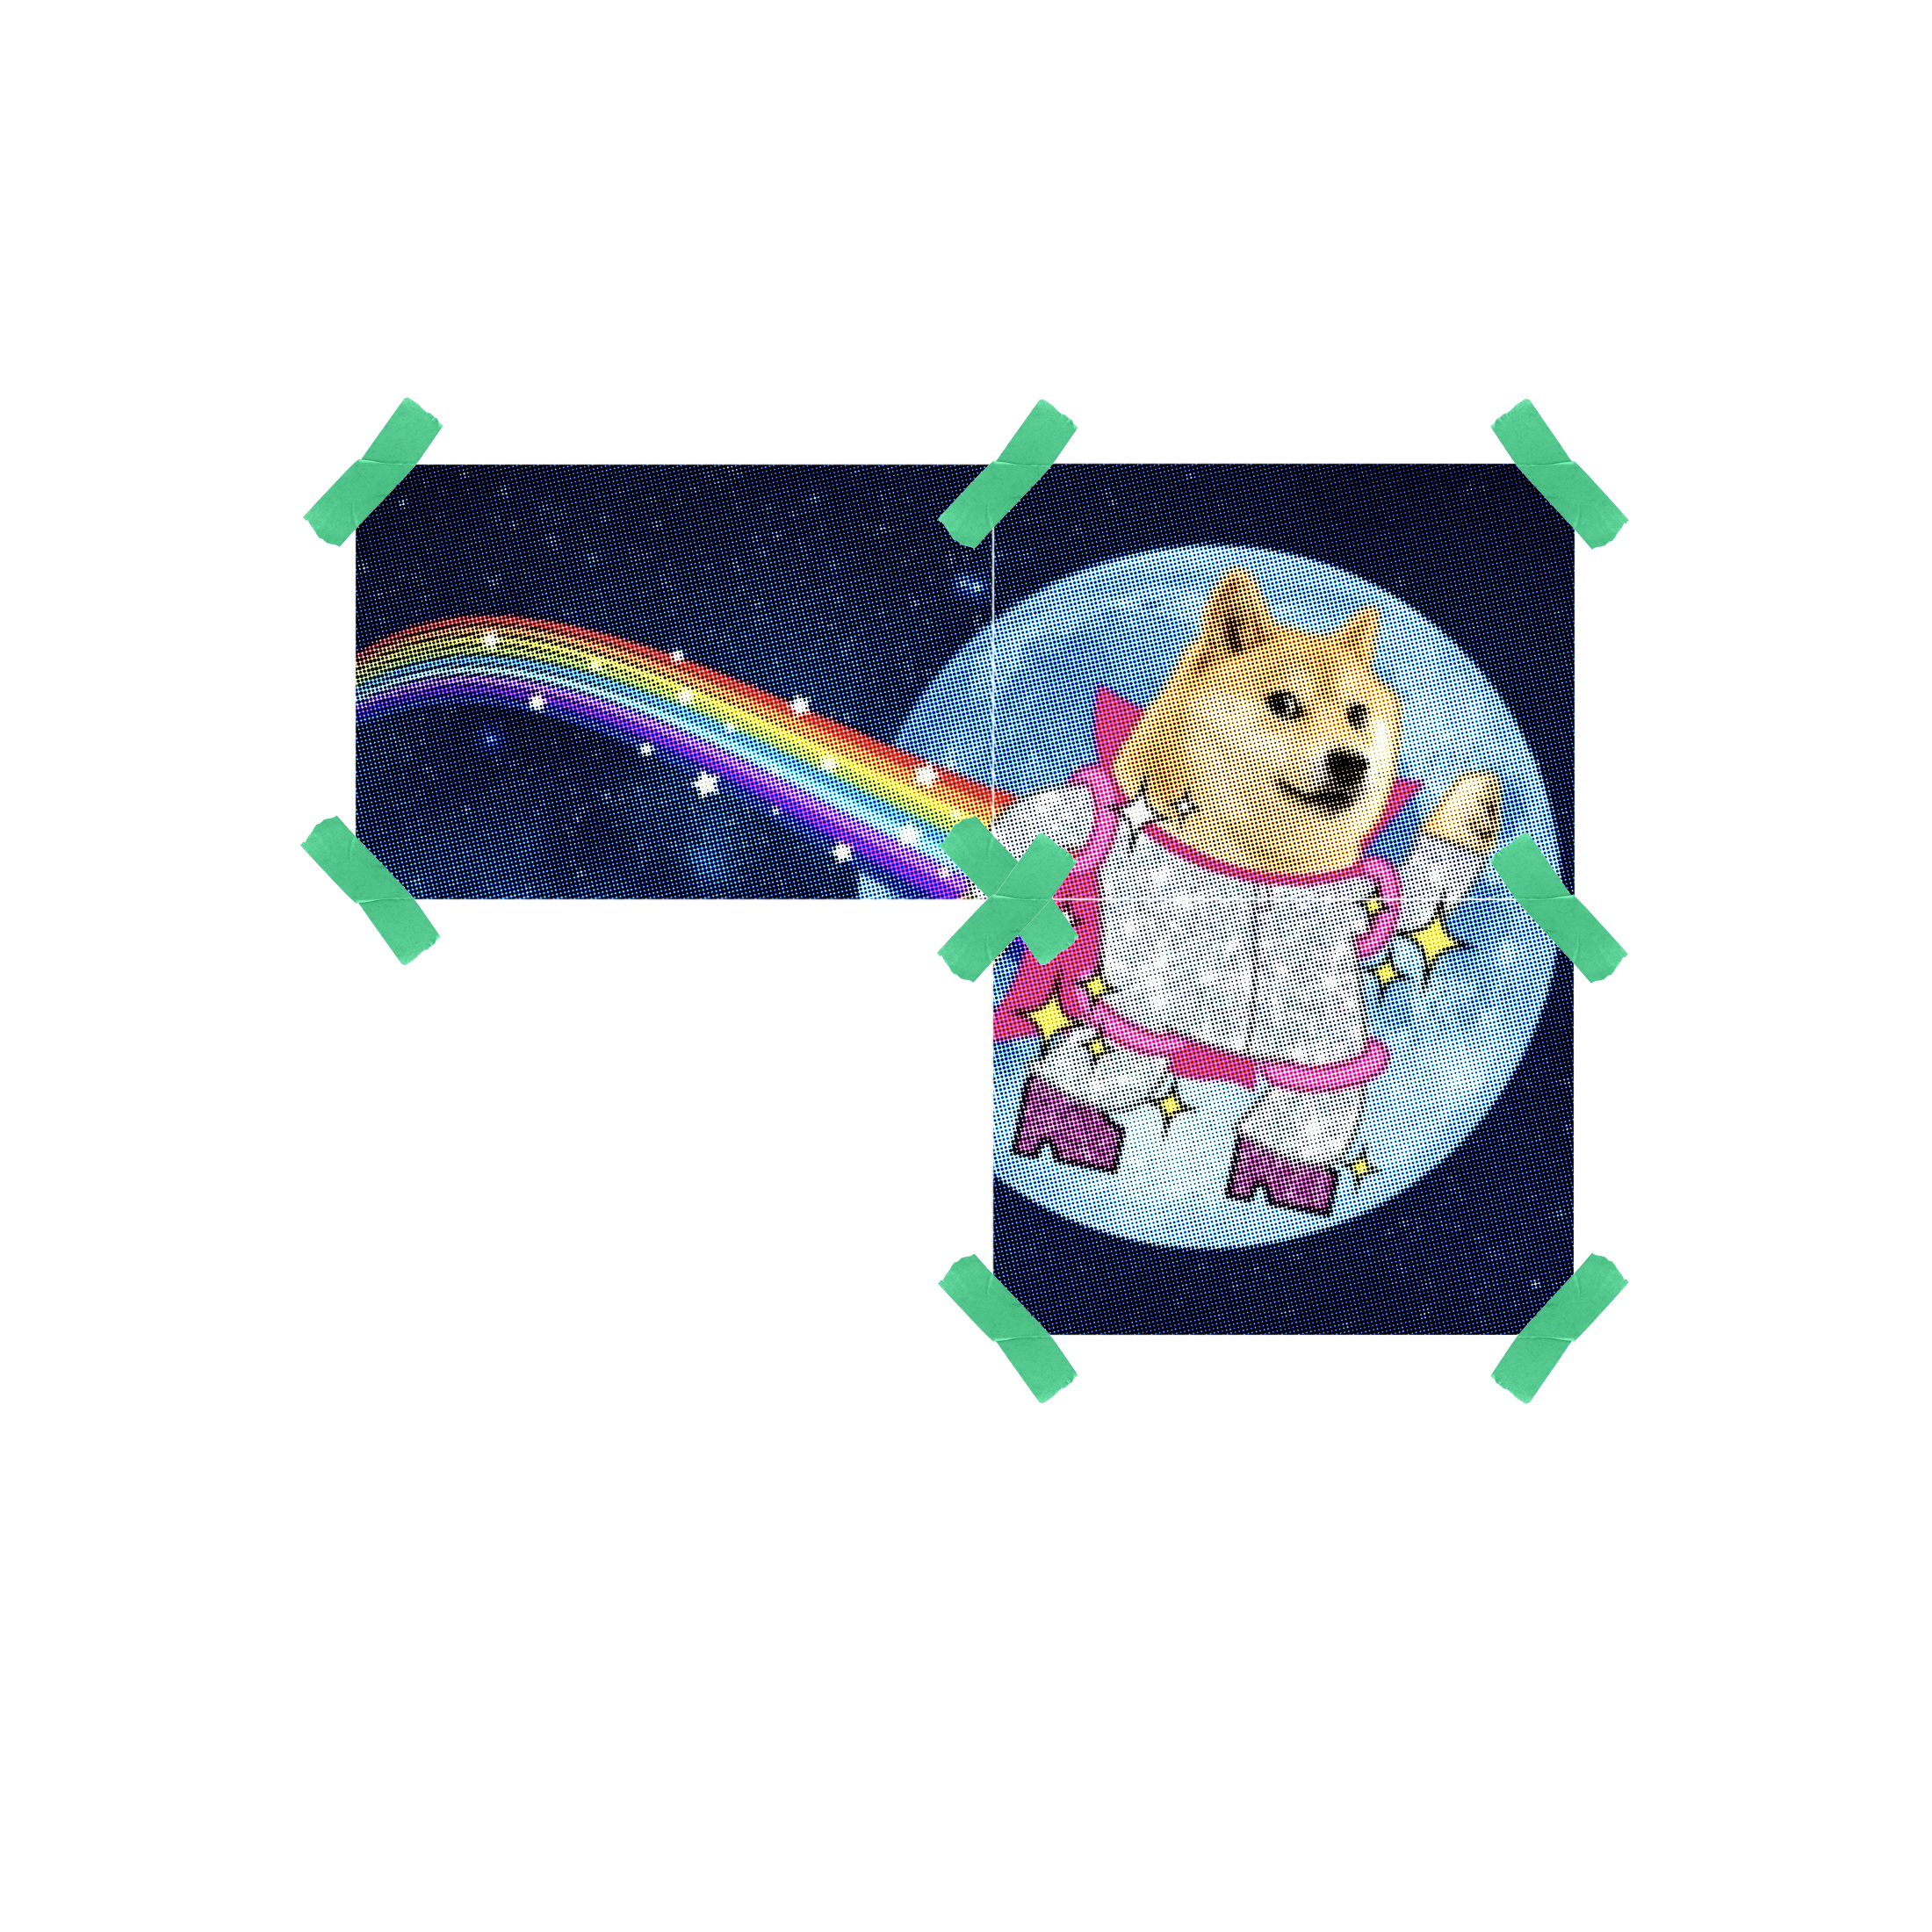 Interstellar Doge Disco Launches in Augmented Reality